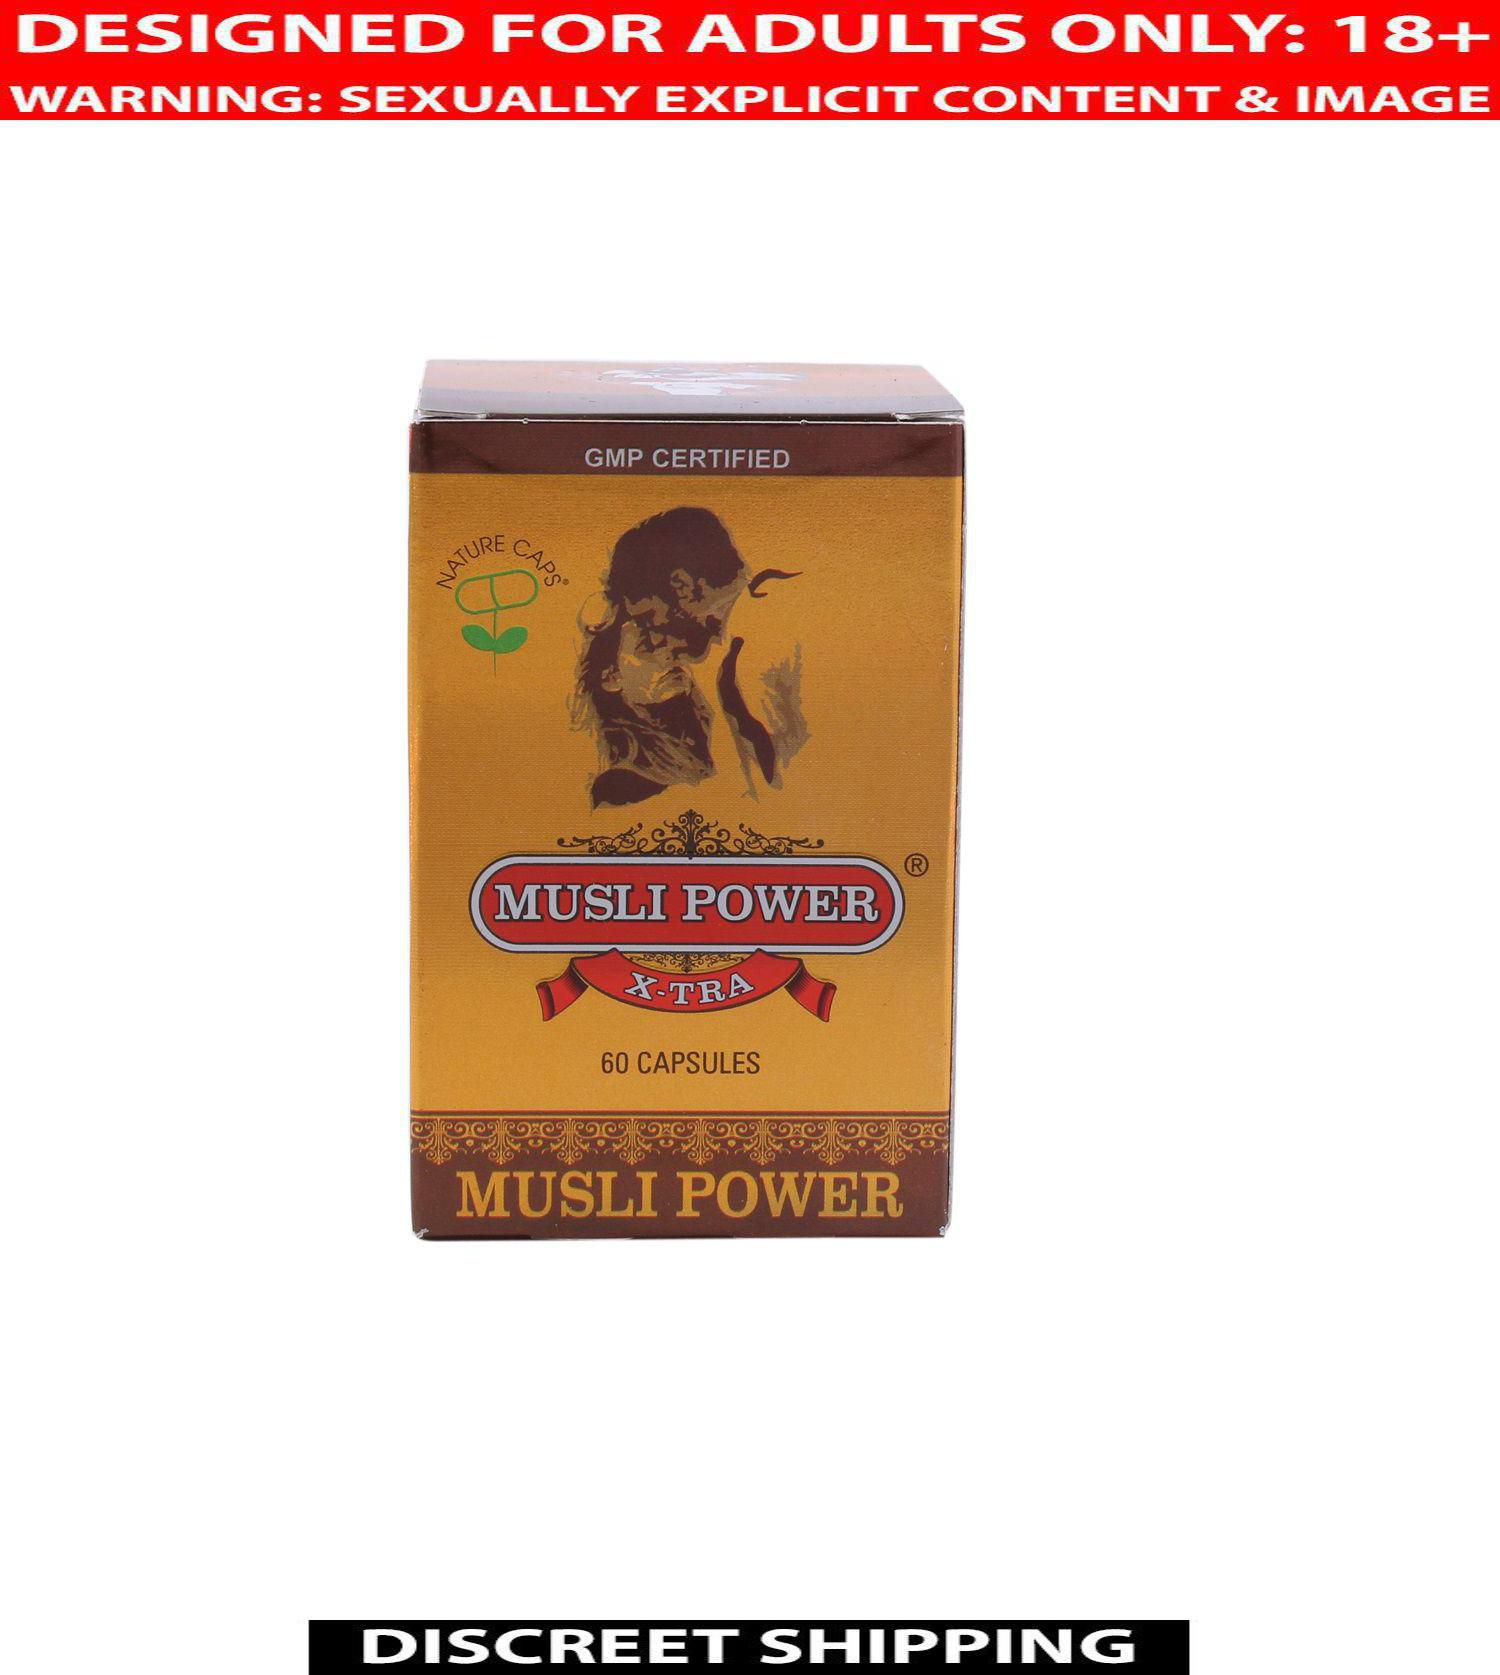 Musli Power Xtra 60 Capsules Buy Musli Power Xtra 60 Capsules at